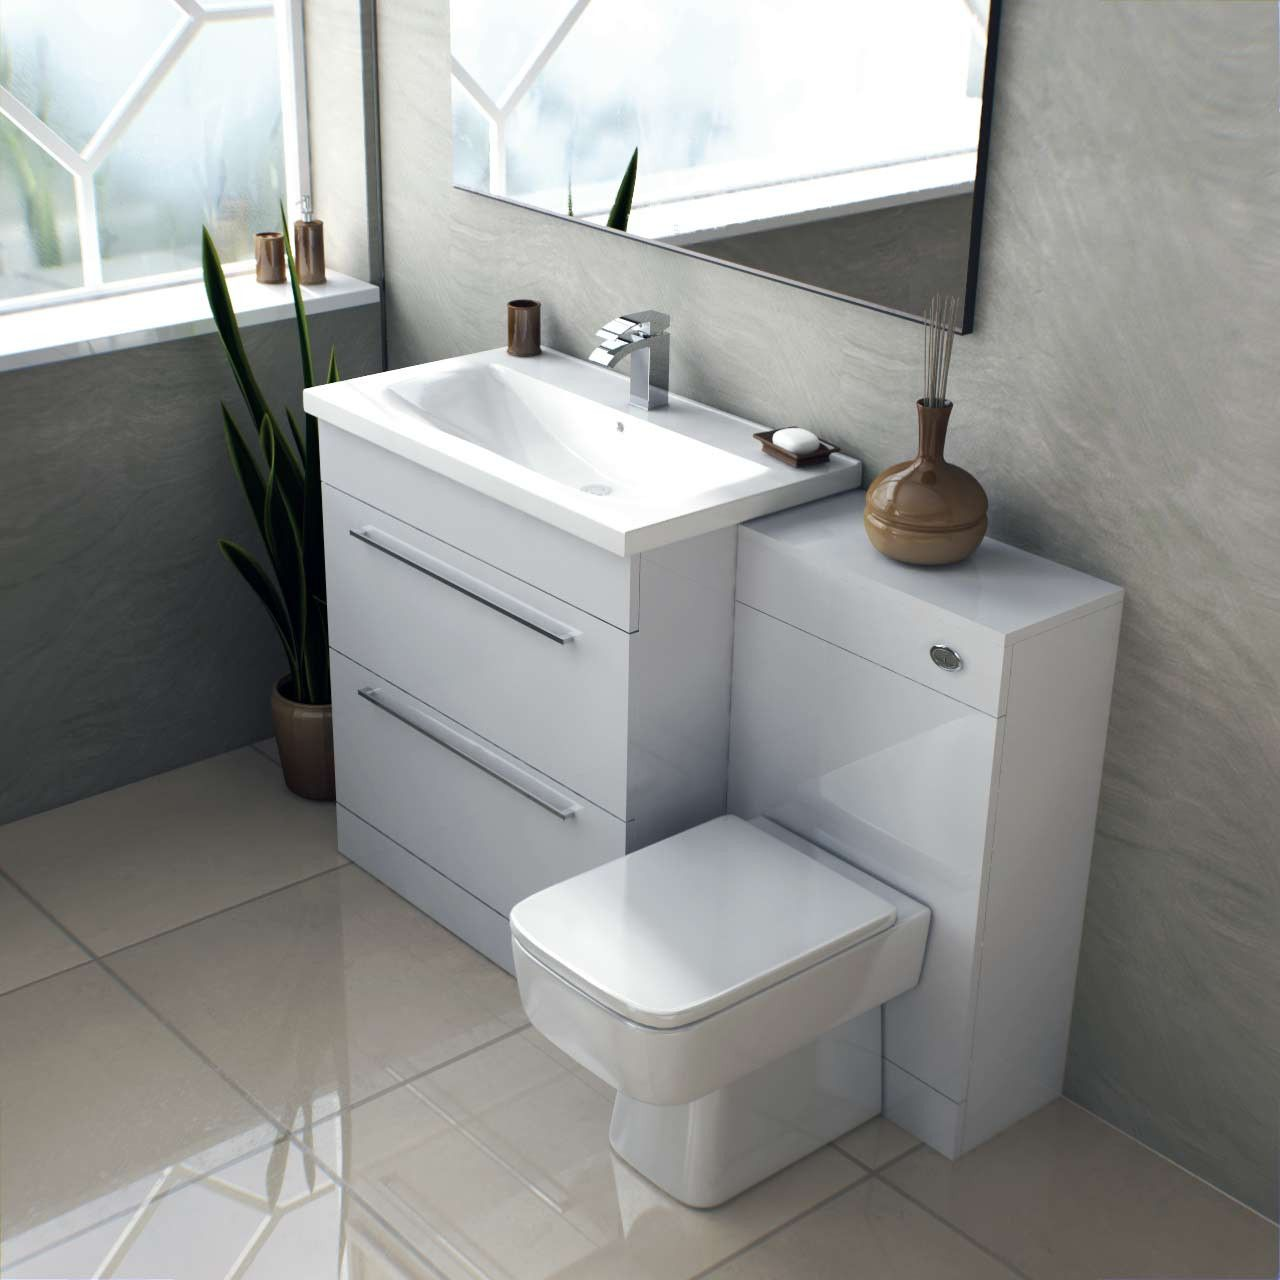 Napoli White Gloss 1300mm 2 Drawer Vanity Unit Toilet Suite Toilet And Sink Unit Bathroom Sink Units Toilet Suites